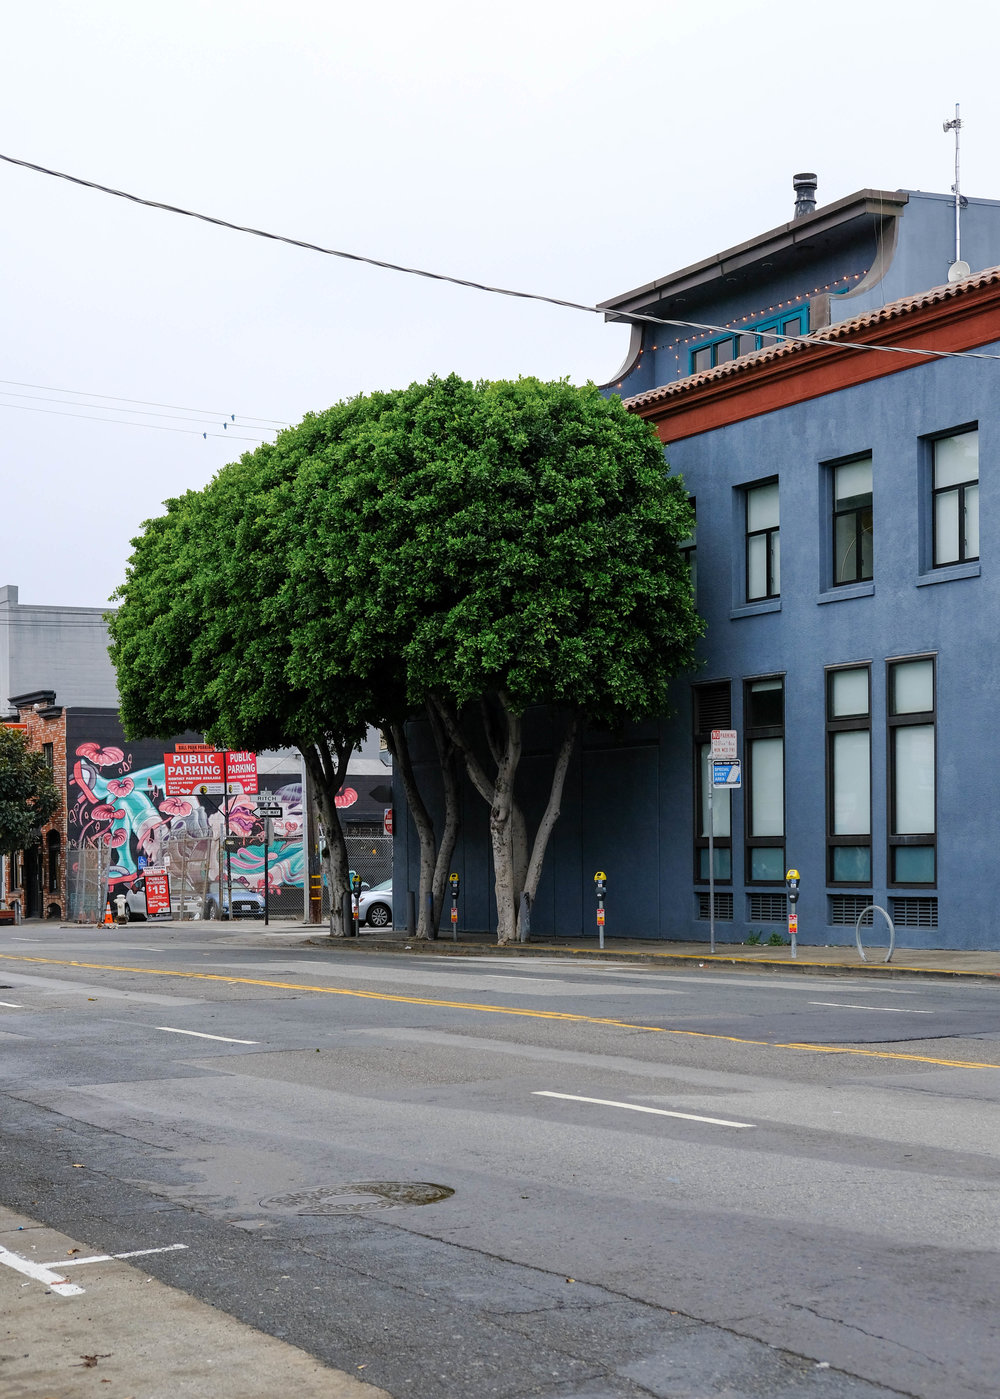 "<p style=""font-family:brandon-grotesque;font-weight:500; font-size:11px; text-center:left; color:light grey;letter-spacing: 1px"">SEPTEMBER 30, 2017 • 🌳 • 📍 San Francisco, CA</p>"